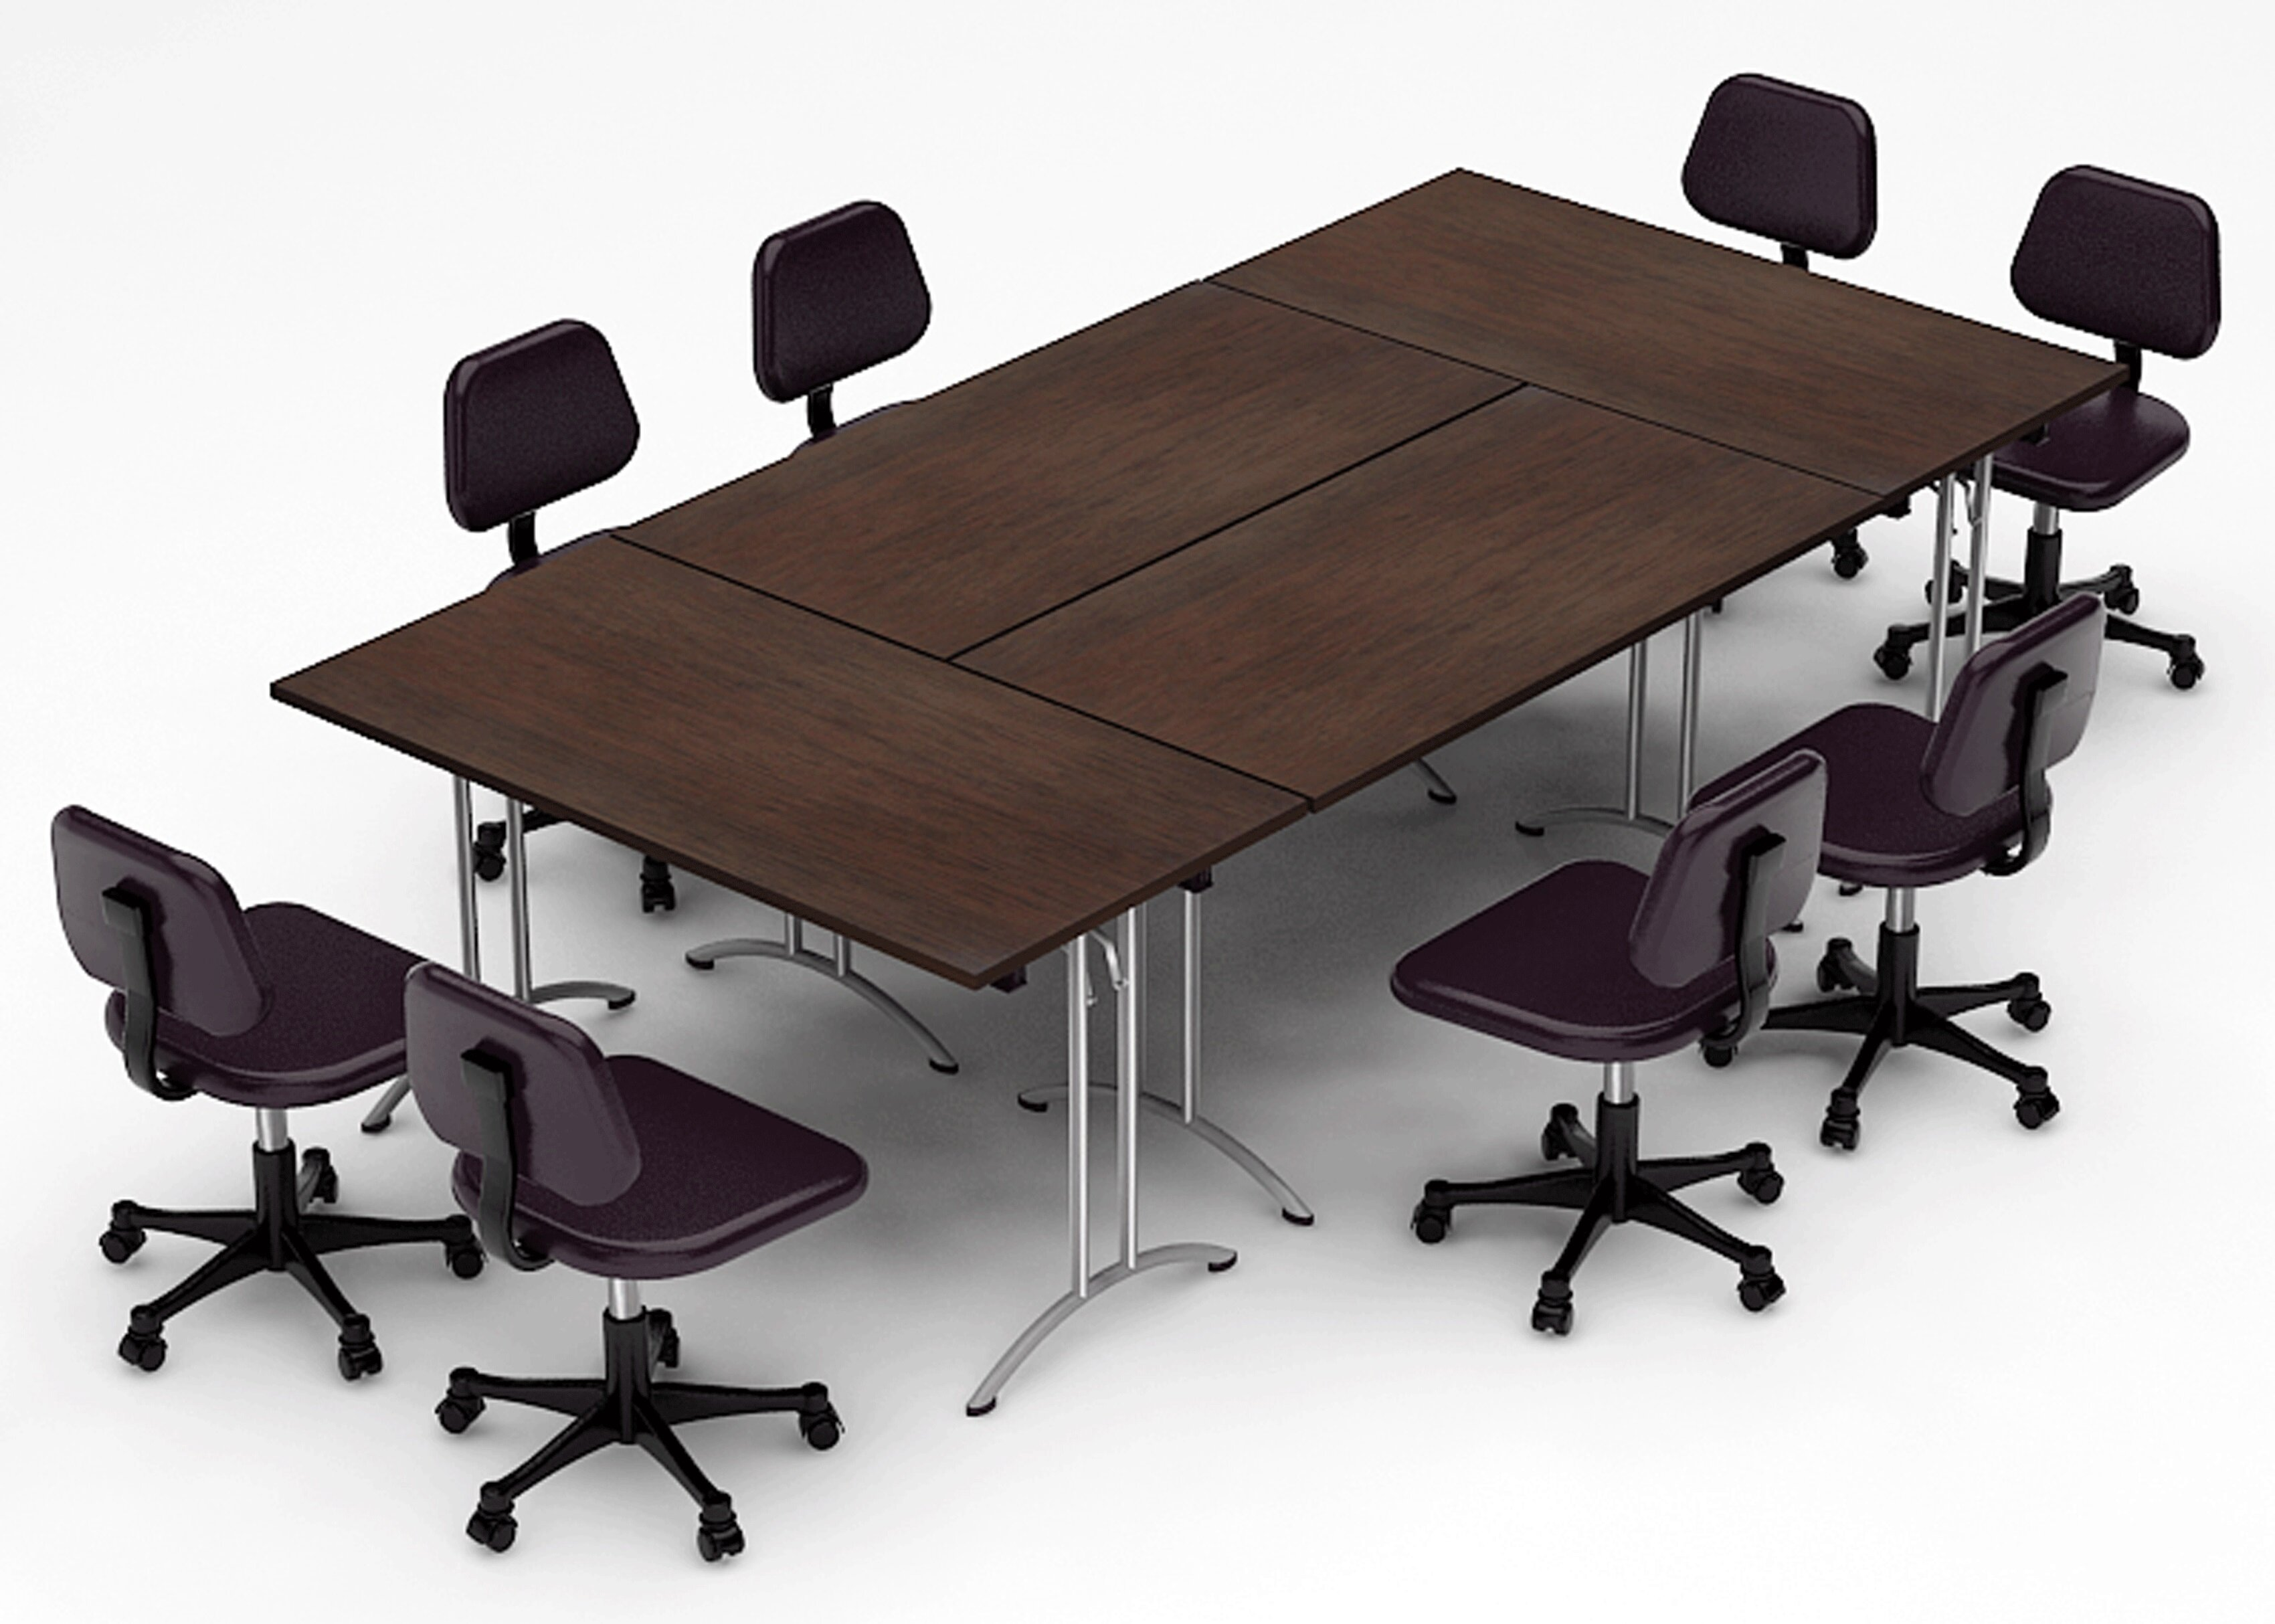 view expertly lps tables all conference room crafted office interiors table